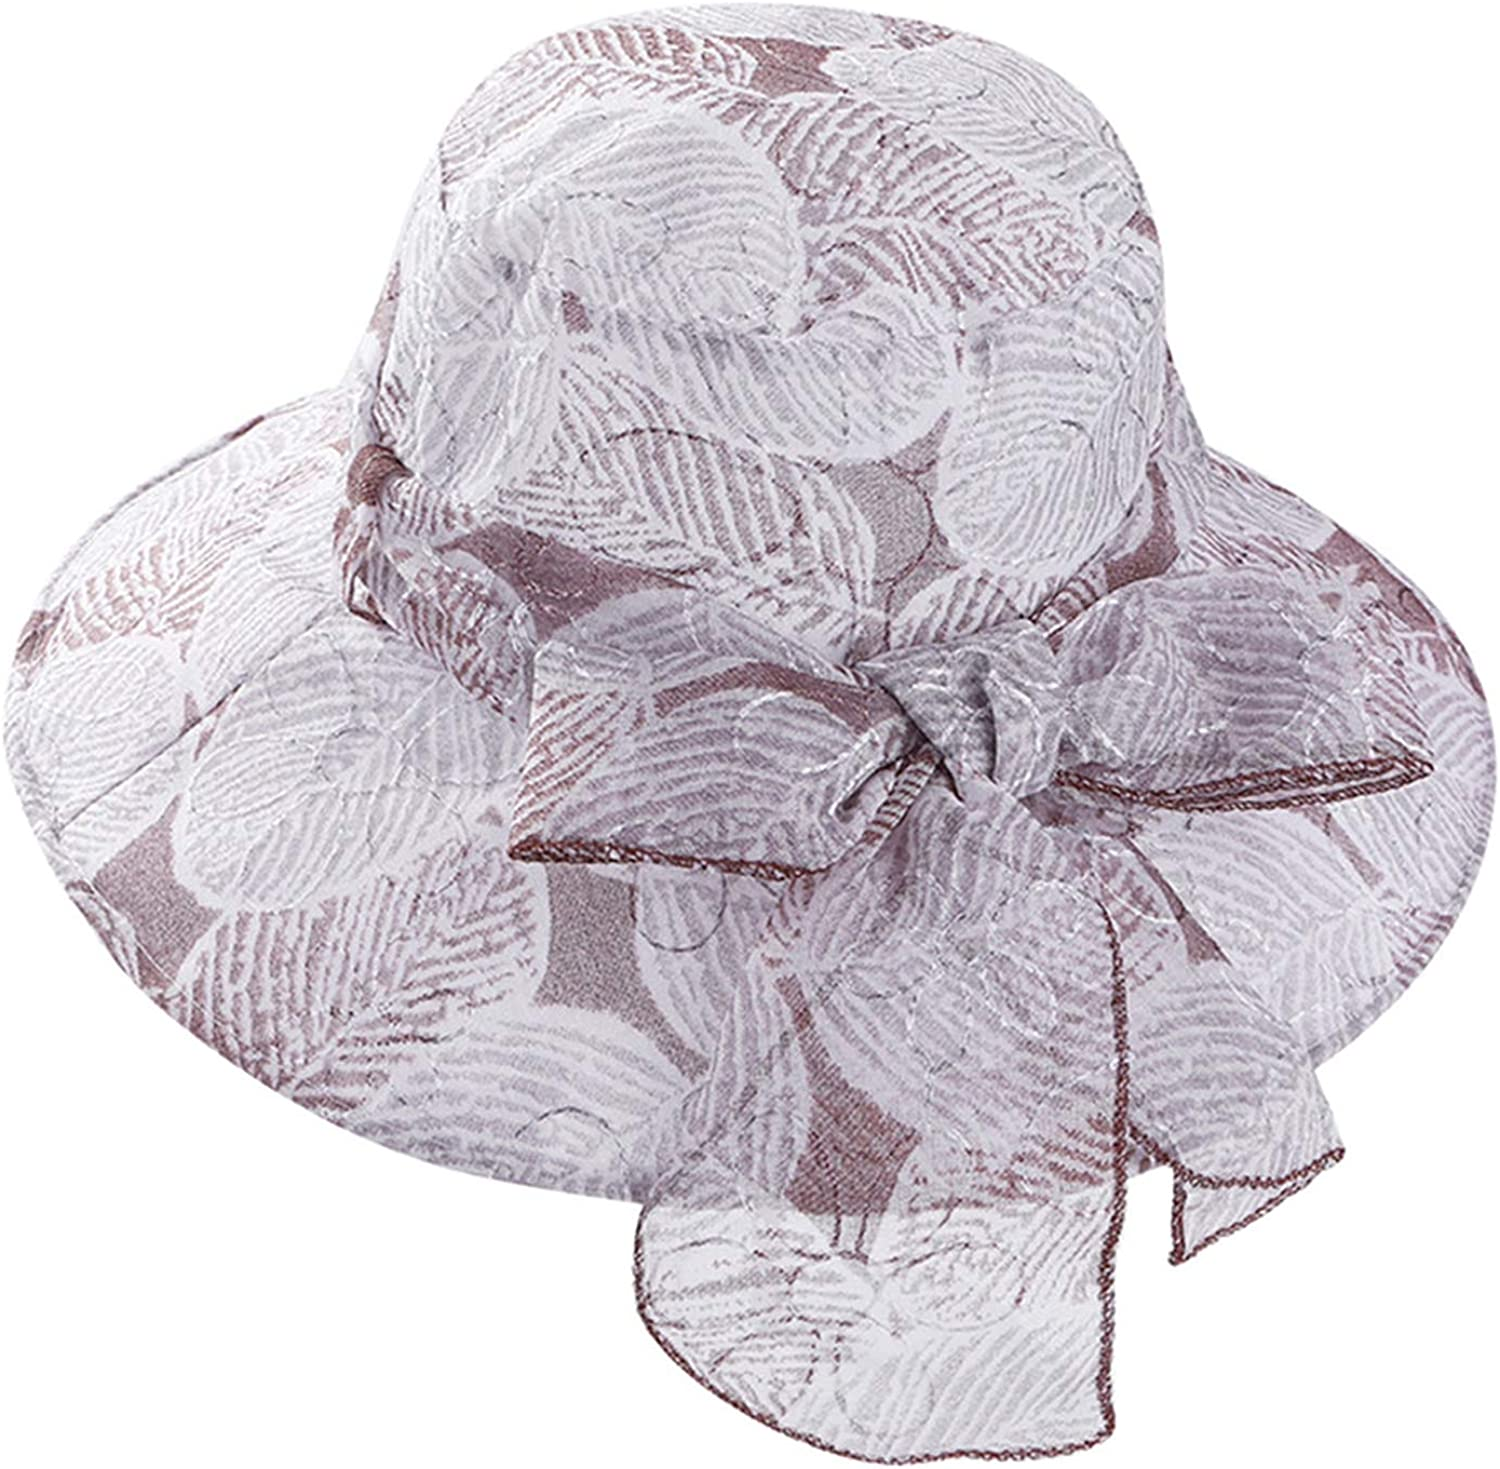 Fashion Bowknot Wedding Fedora Summer Women Organza Gauze Large Wide Brim Sun Hat Church Hat